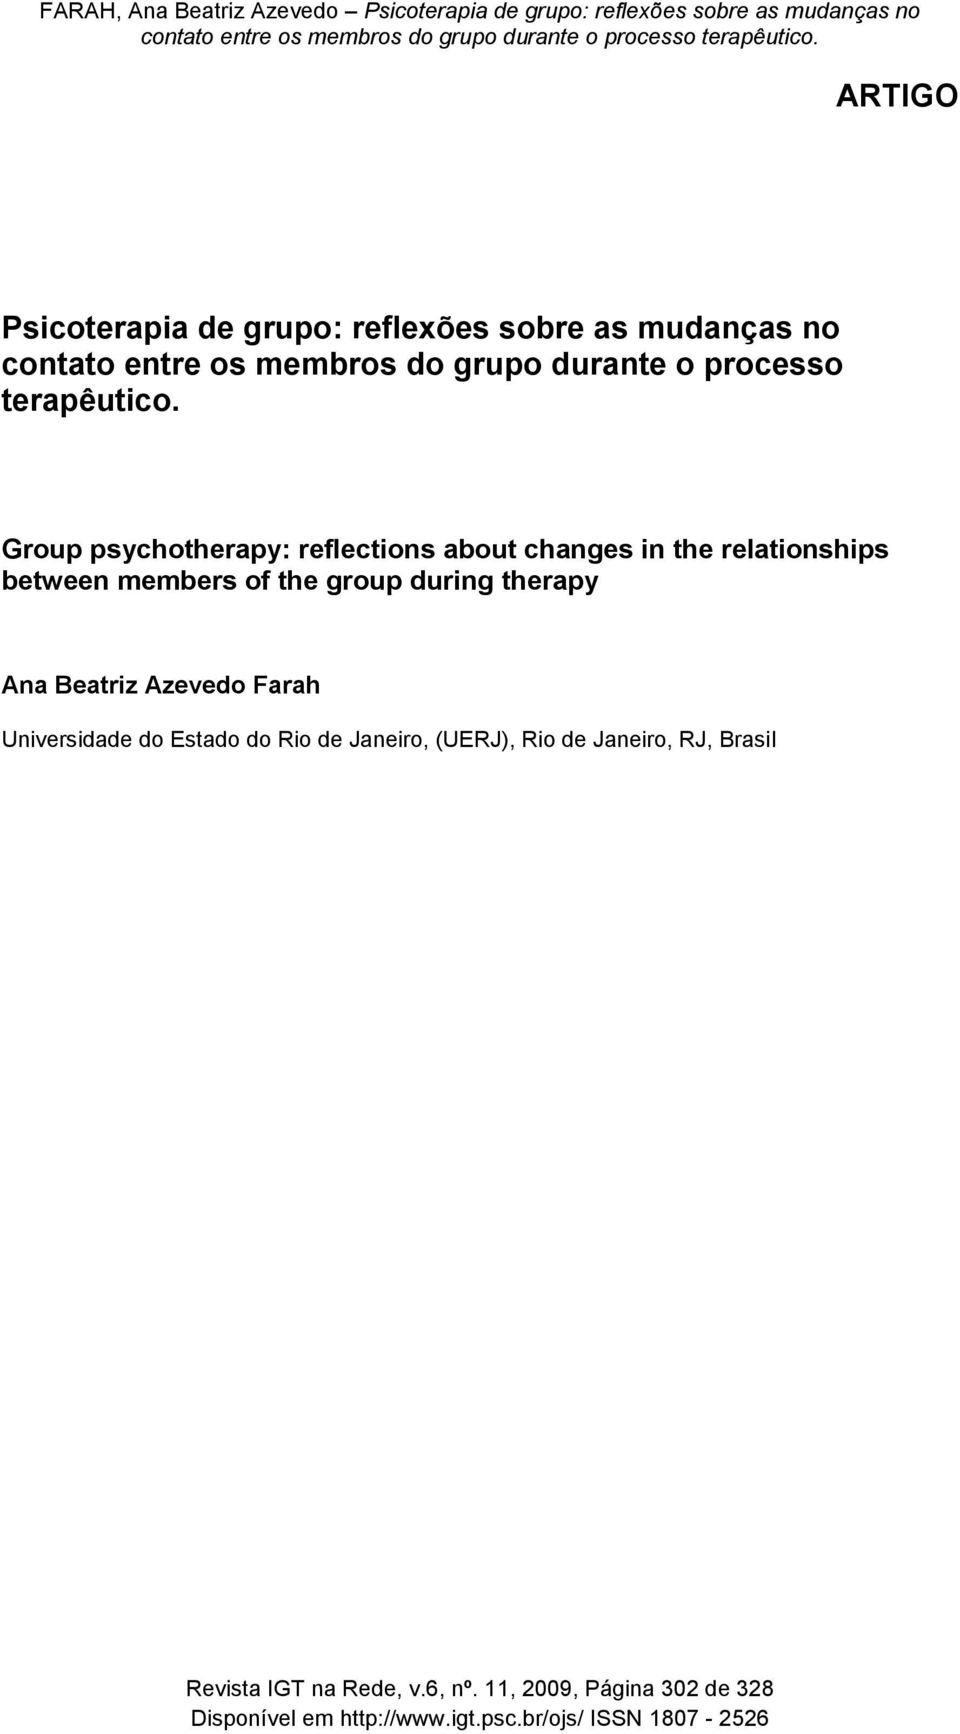 Group psychotherapy: reflections about changes in the relationships between members of the group